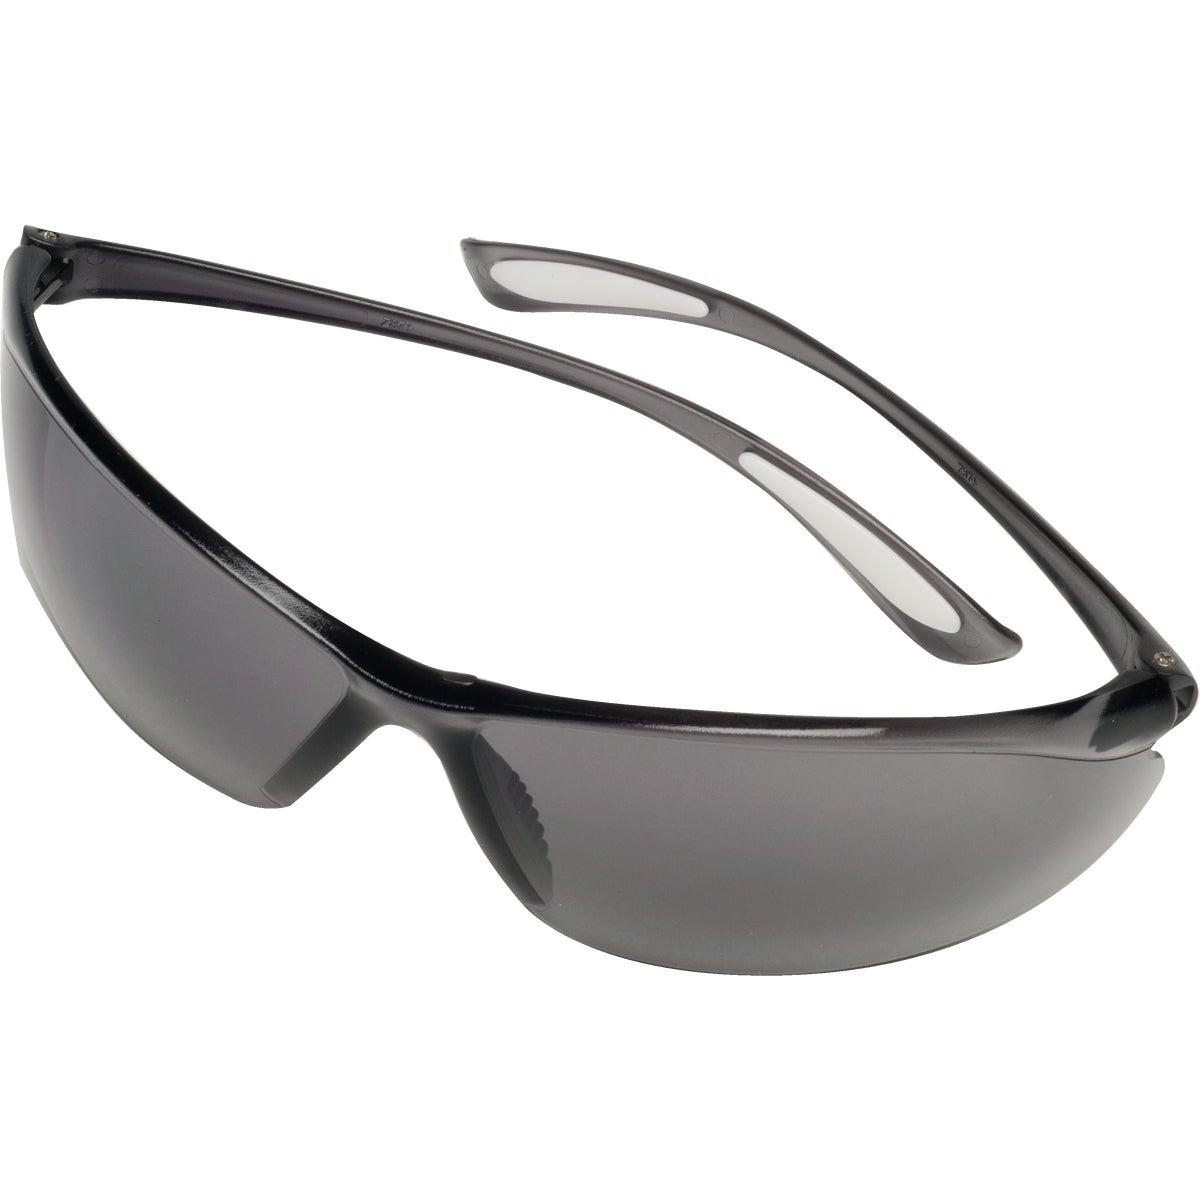 FEATHRFT SAFETY GLASSES - 10105407 by Msa Safety